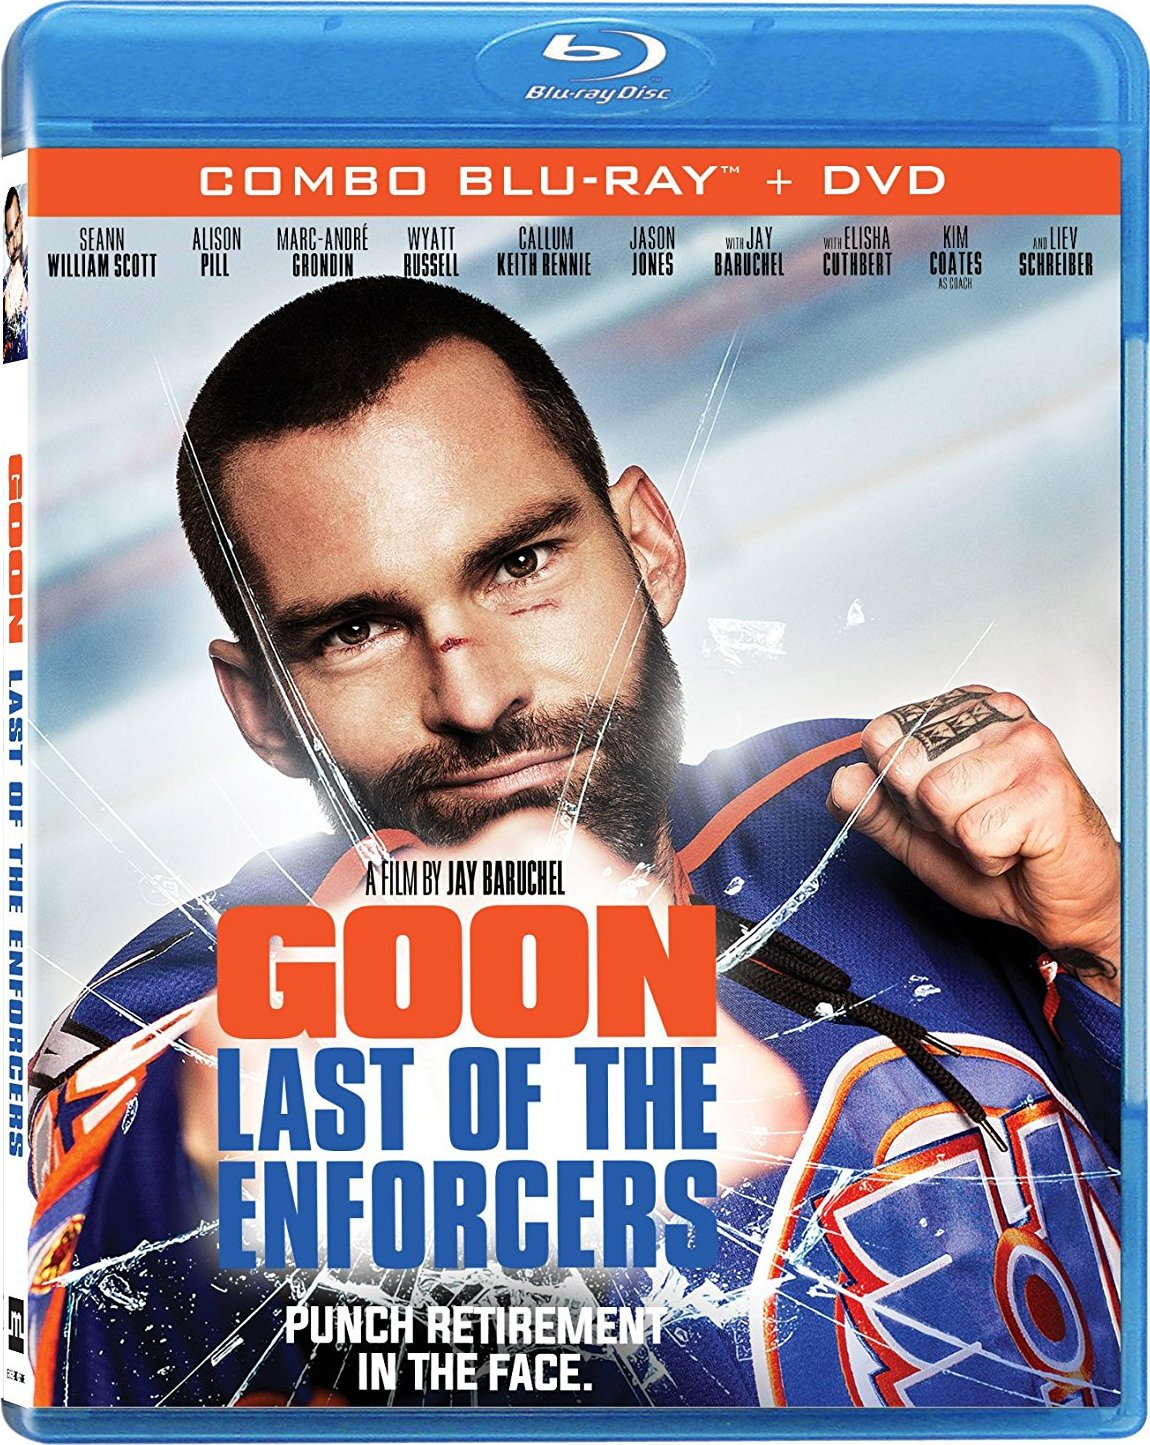 Goon: Last of the Enforcers (2017) poster image